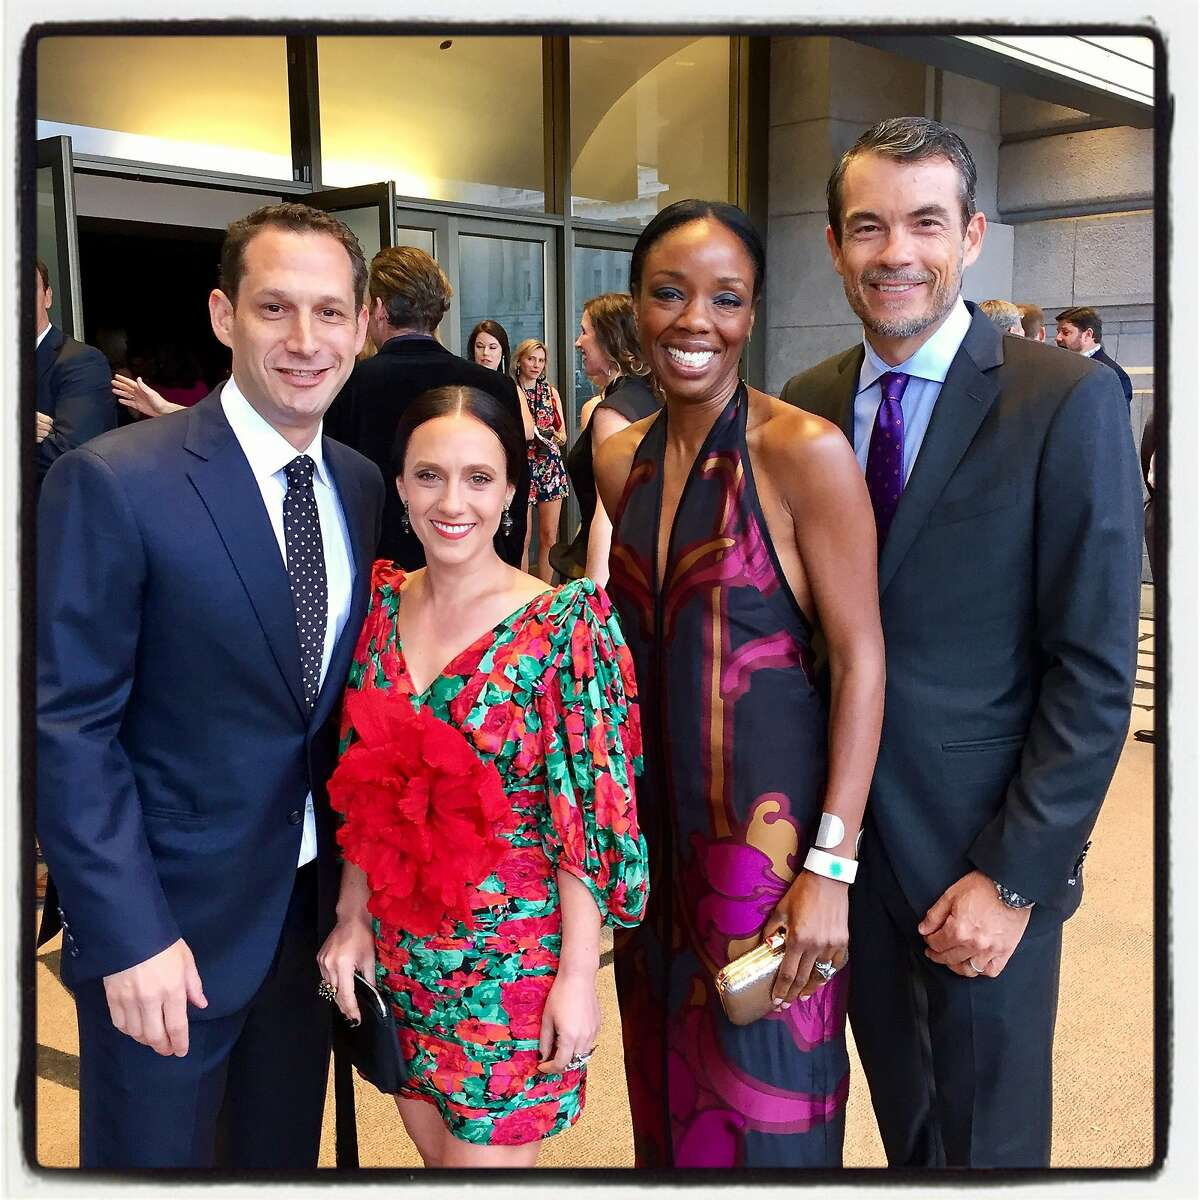 Tipping Point founder-CEO Daniel Lurie and his wife, Becca Prowda (left) with Dr. Nadine Burke and her husband, Arno Harris, at Bill Graham Civic Auditorium. May 4, 2017.